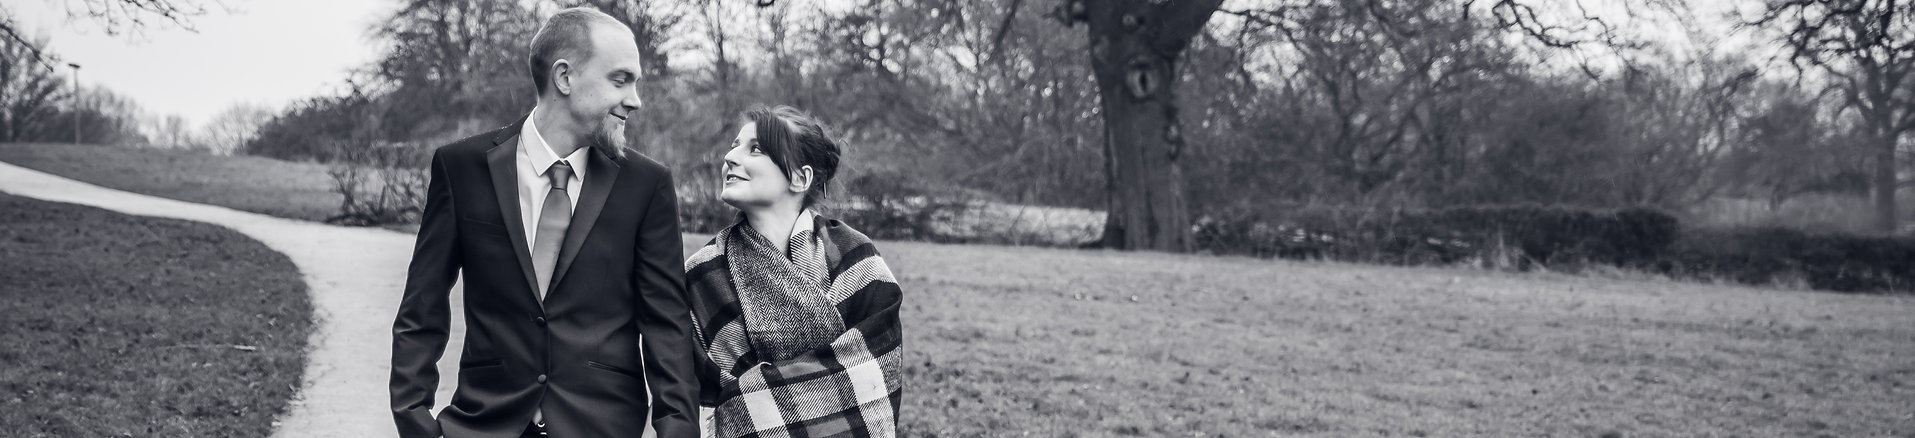 relaxed professional photoshoots from Dal Hatton Photography